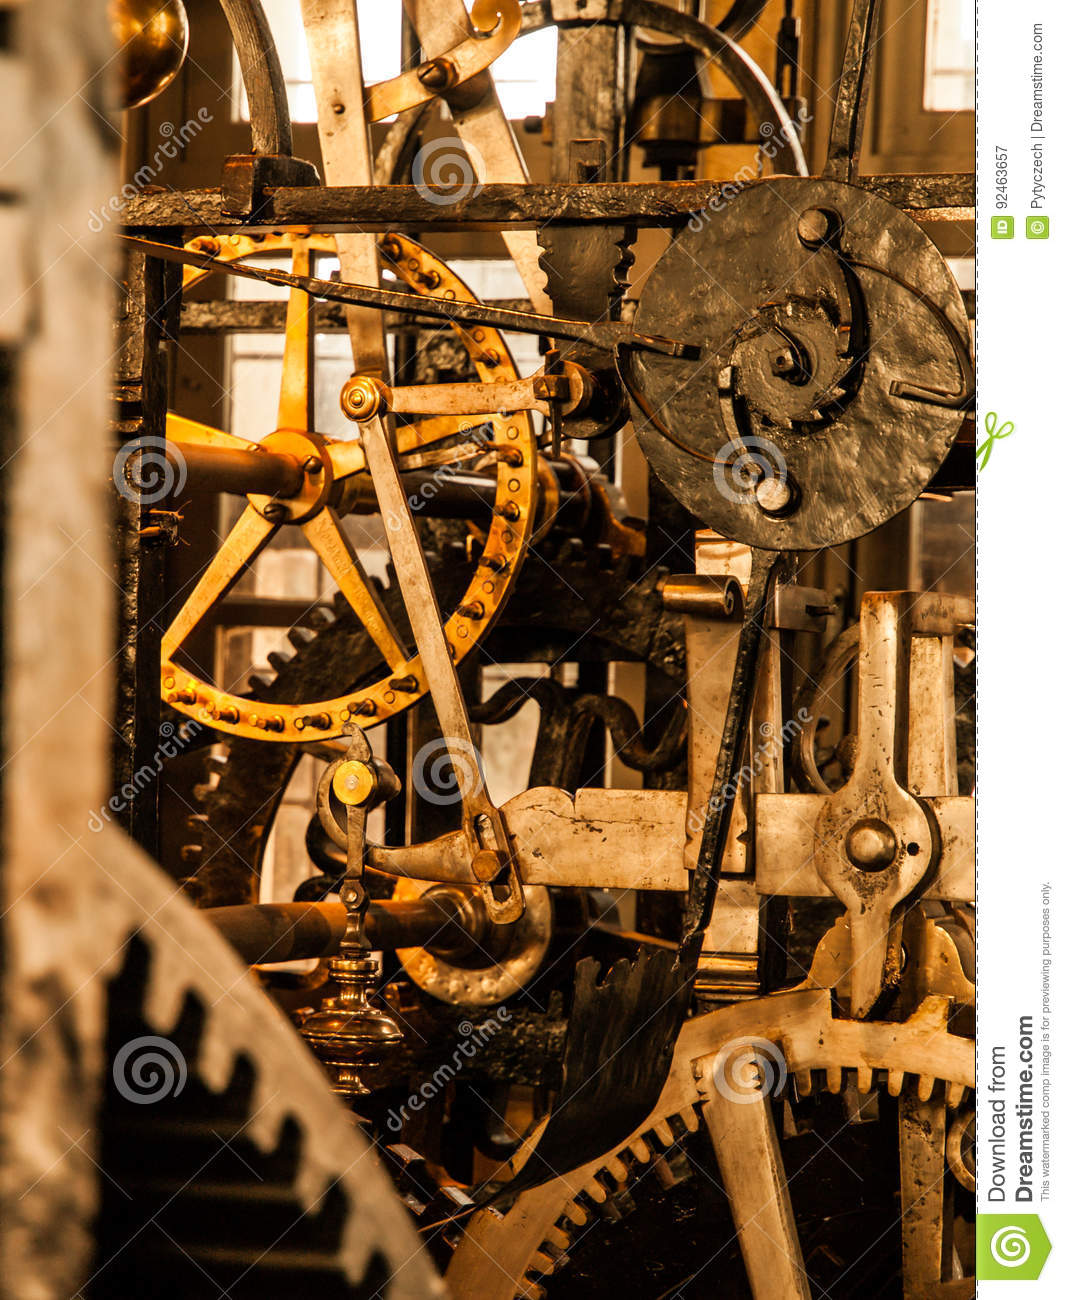 Clockwork mechanism. Close up view of cog wheels and other mechanical parts of vintage tower clock